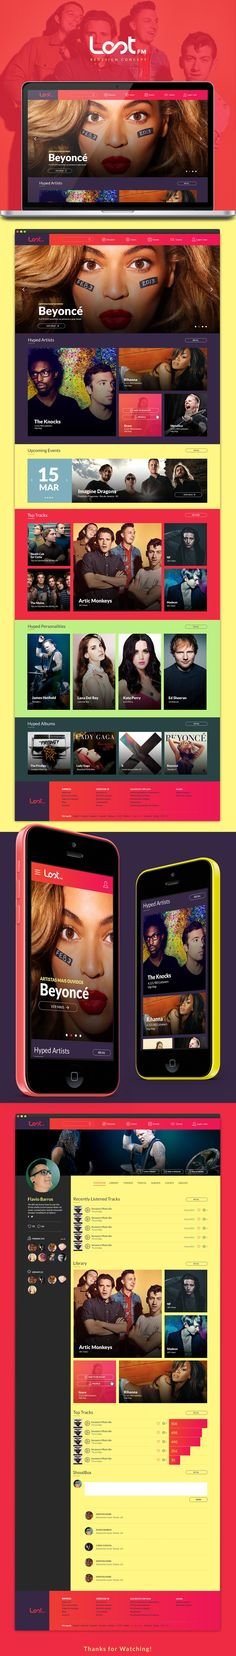 Last FM Redesign Concept on Behance